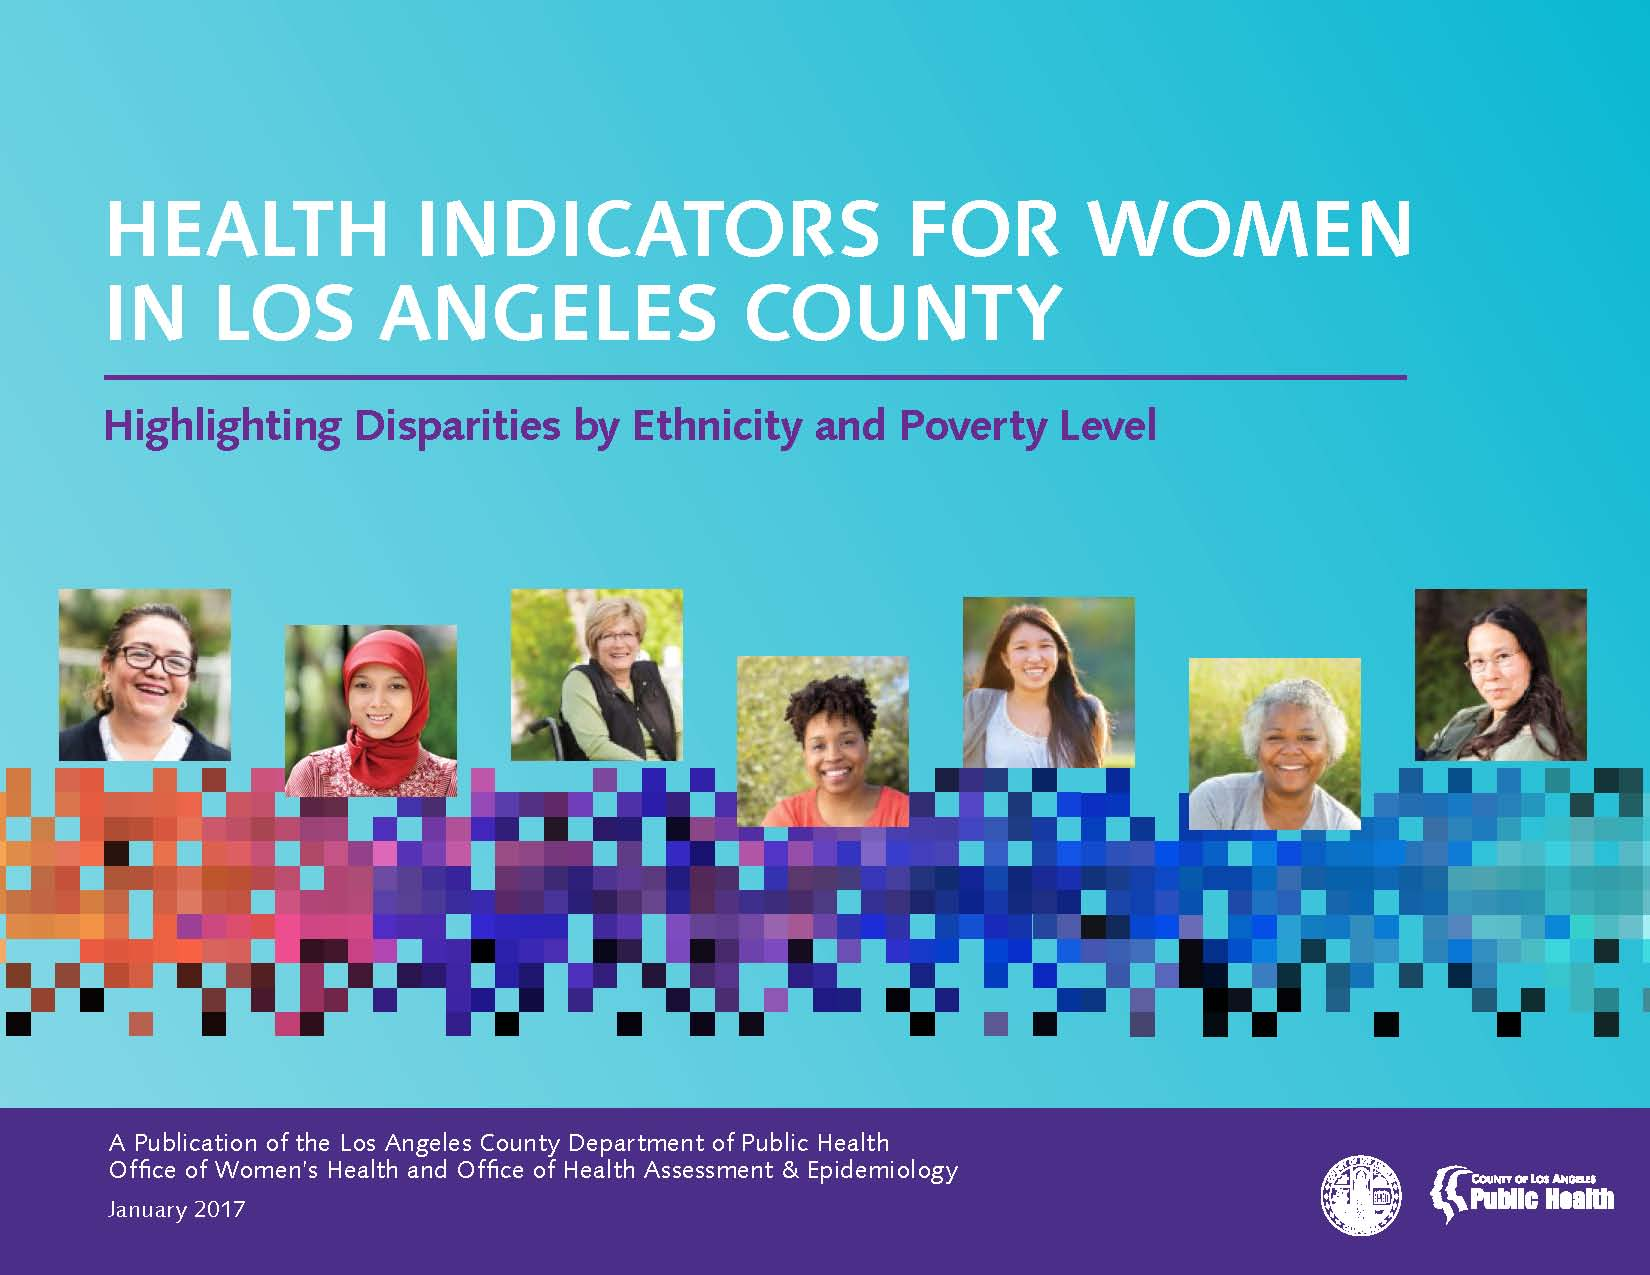 Health Indicators for Women-Los Angeles County-DPH